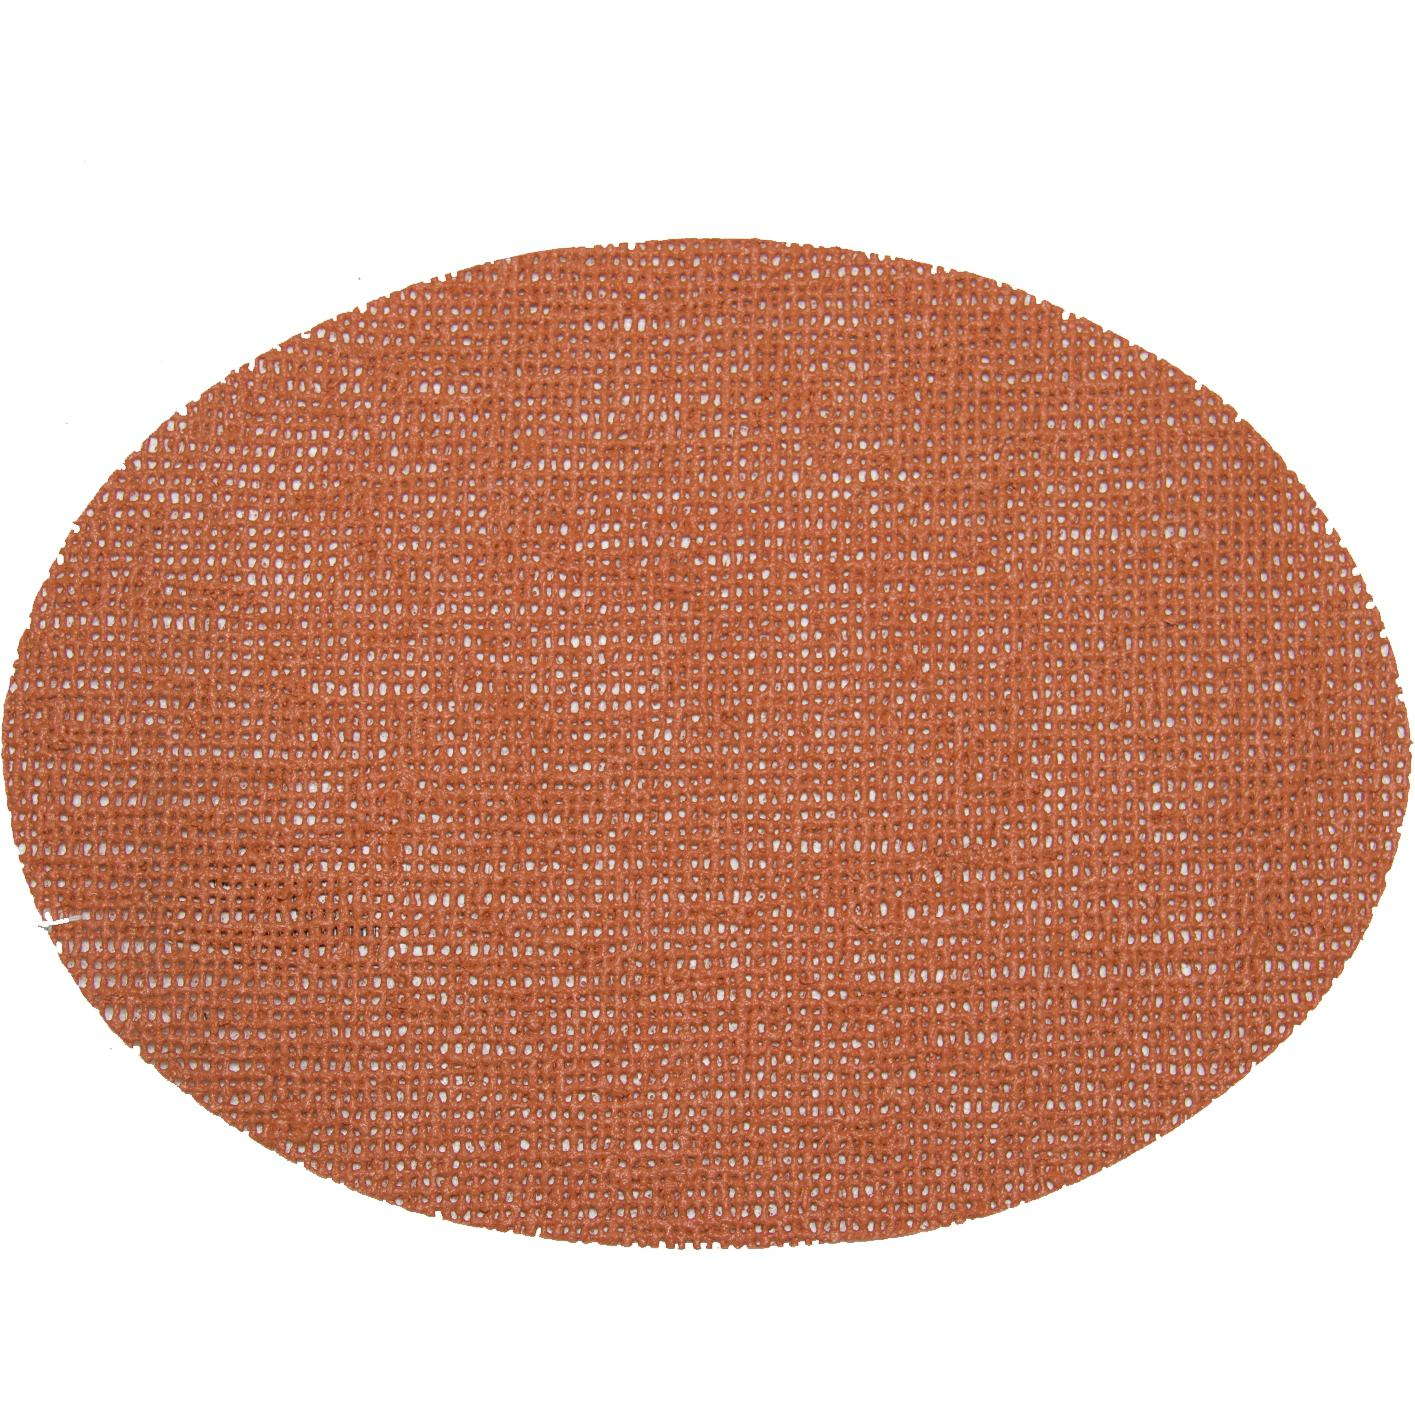 Picture of Fishnet Placemats 18 X 13 Oval Placemat - Cinnamon